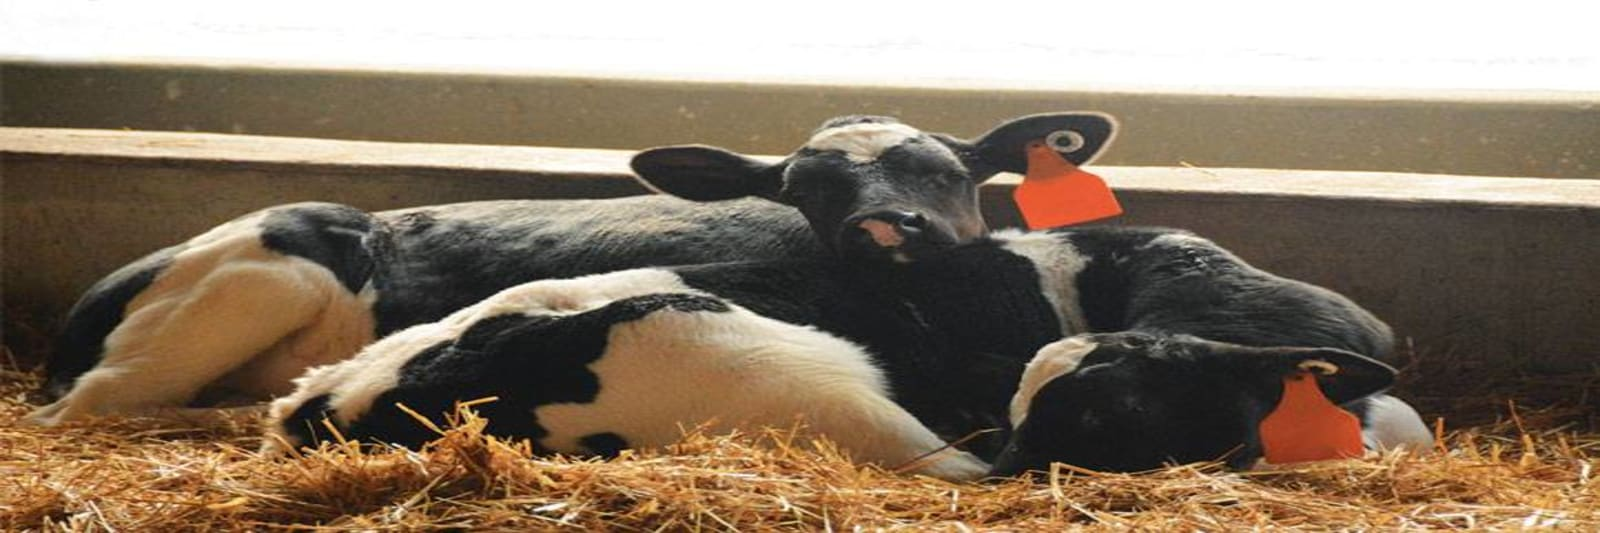 2-calves-sleeping-w1600.jpg